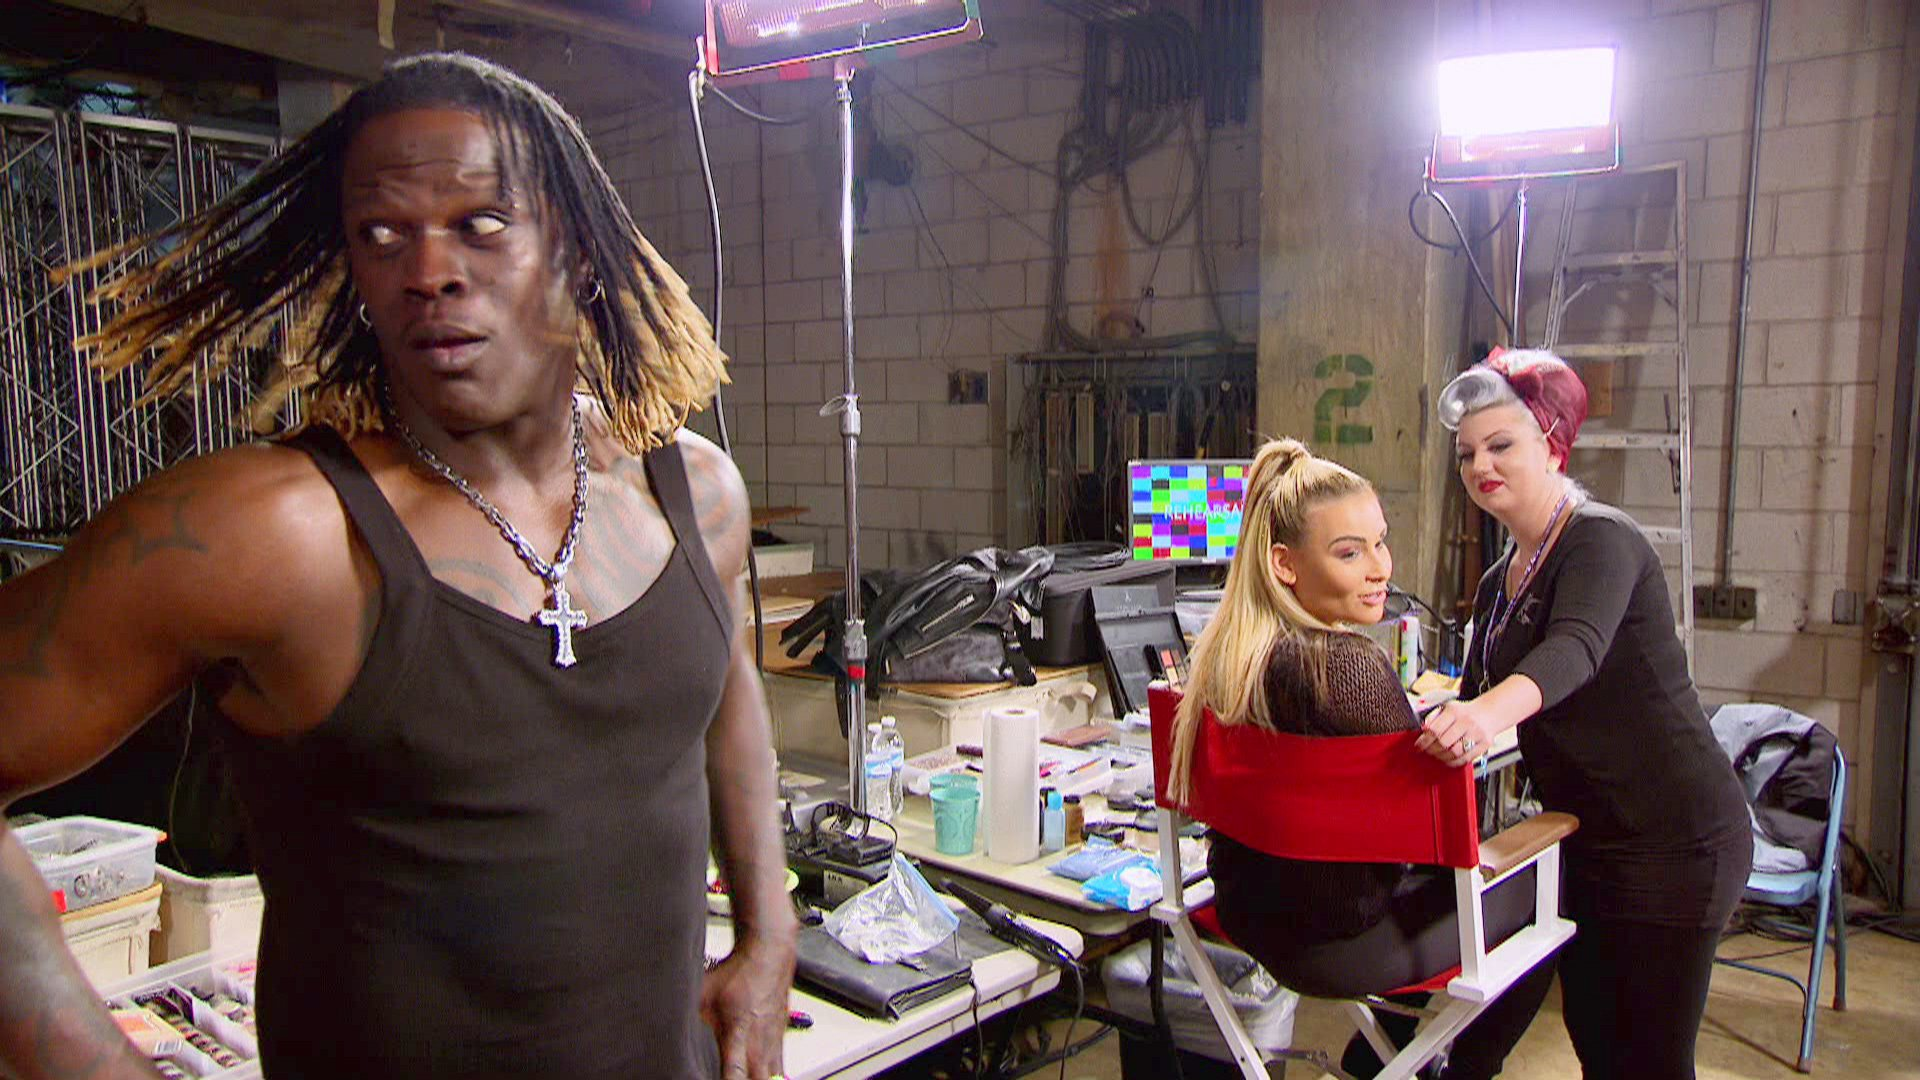 Natalya and Renee, having made up, cajole R-Truth into taking sides in the immortal cats vs. dogs argument.